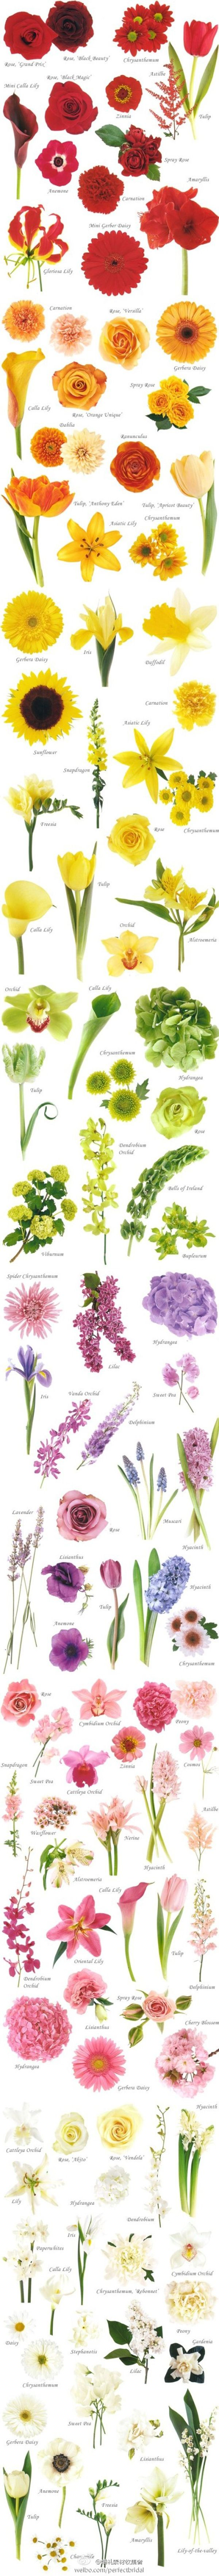 Flower chart... by color.